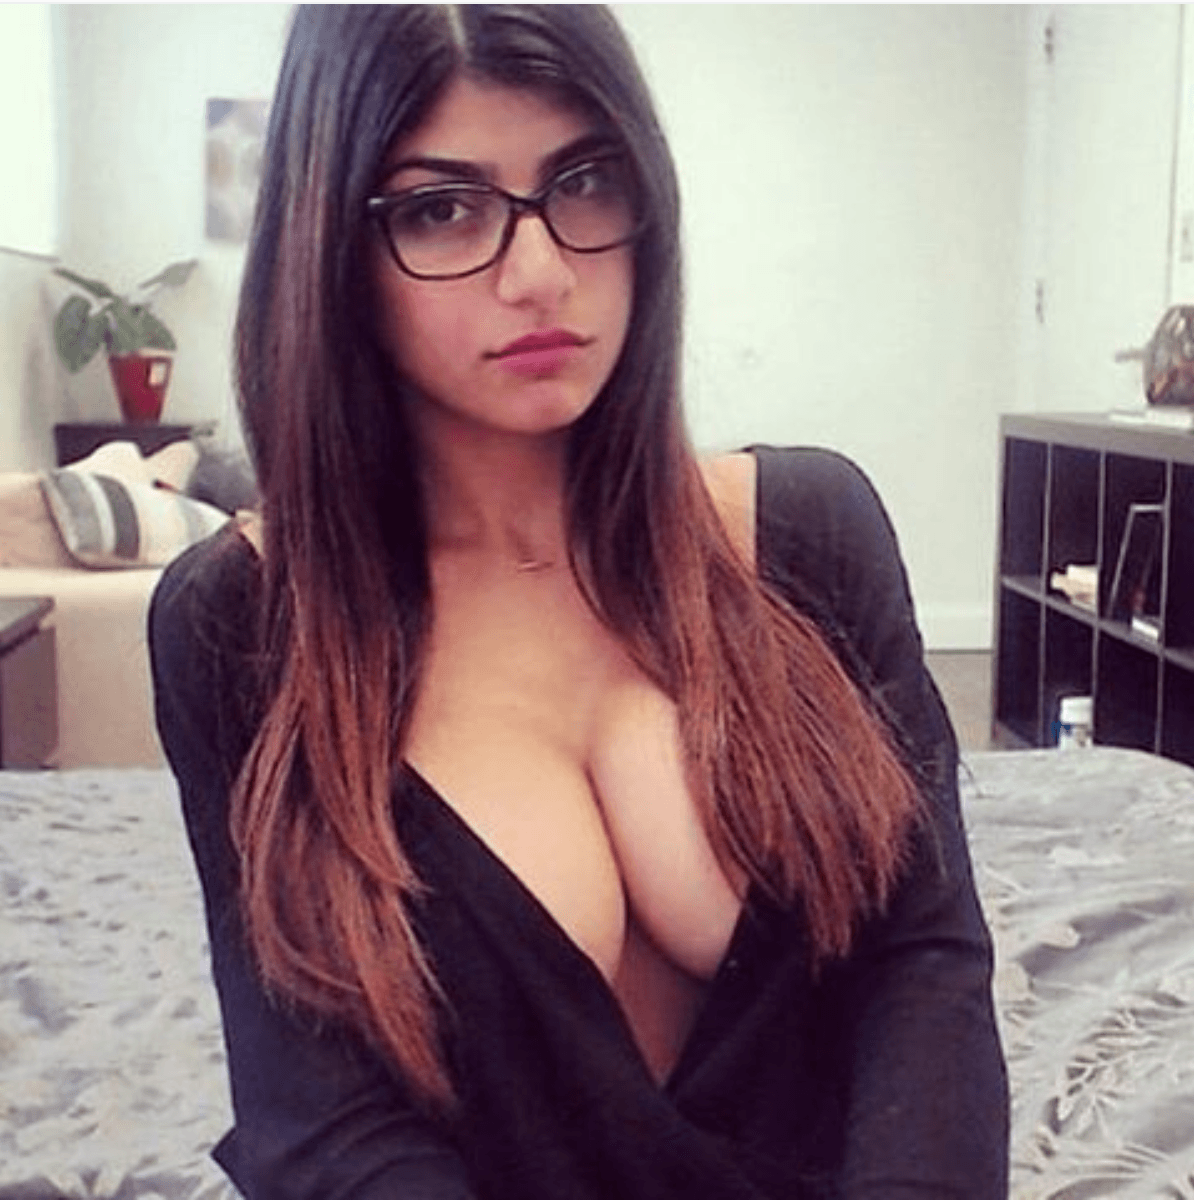 Hijab porn star Mia Khalifa Loaded